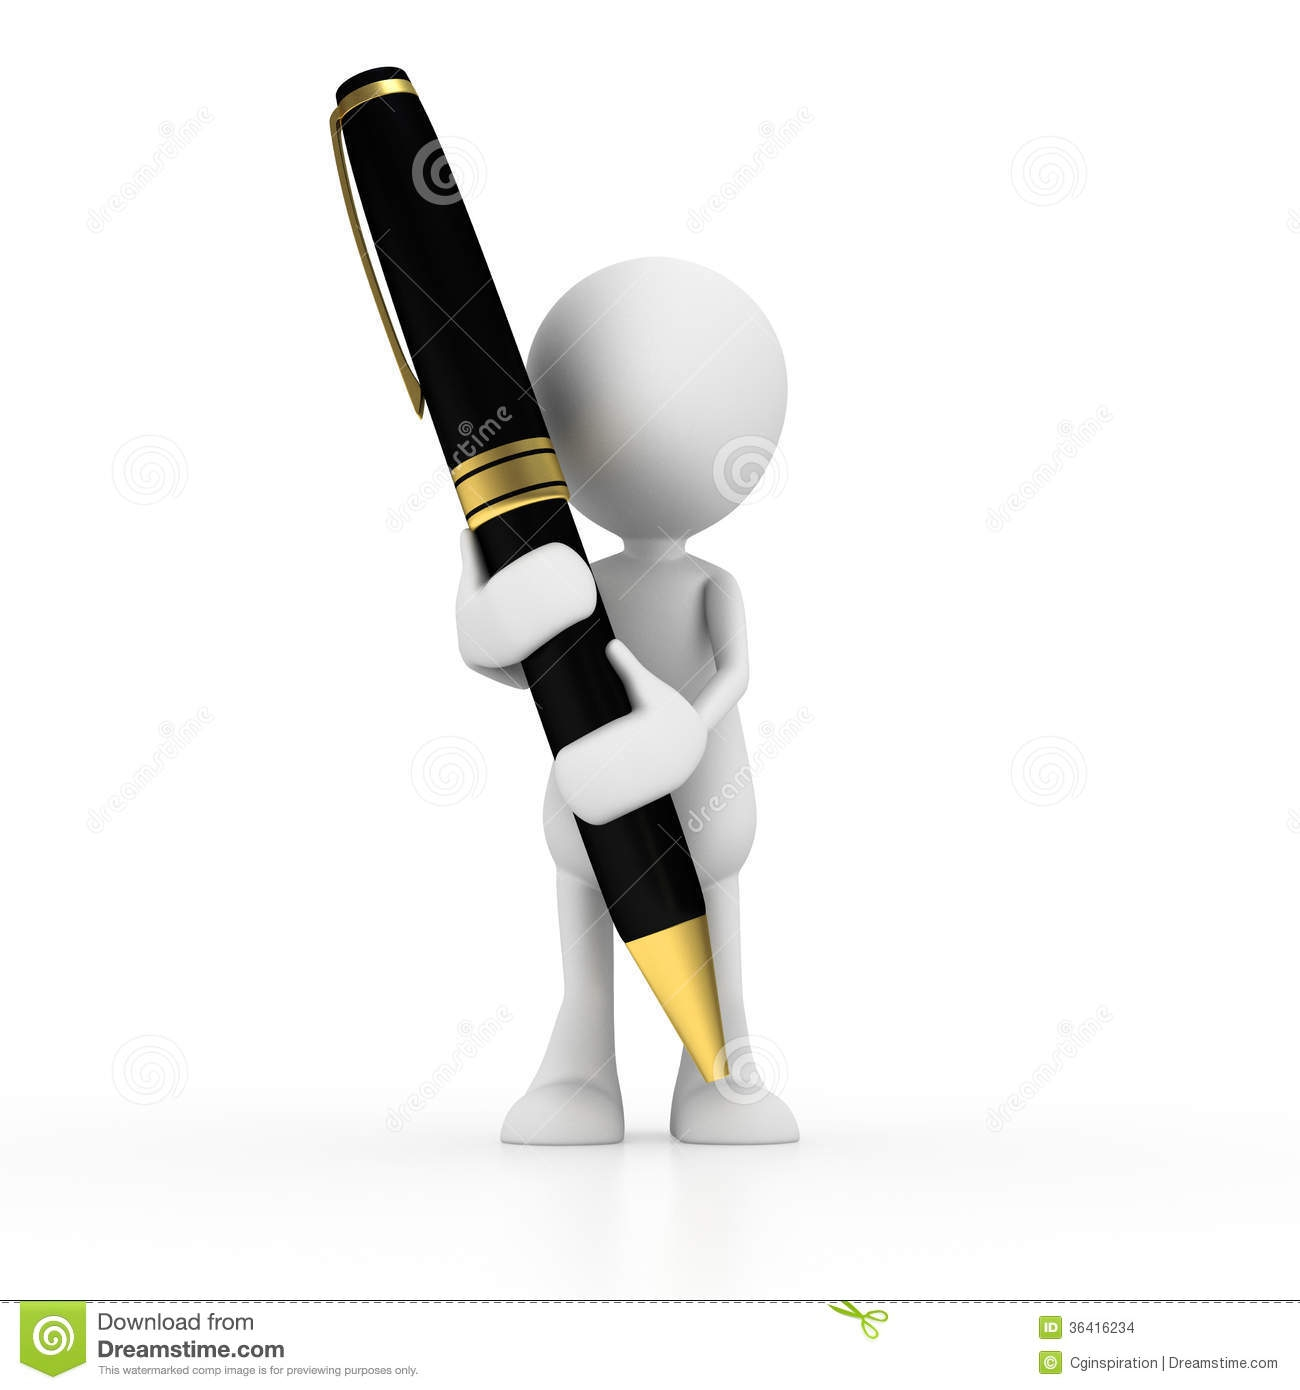 Clip Art Of People Signing In Clipart#2015643.